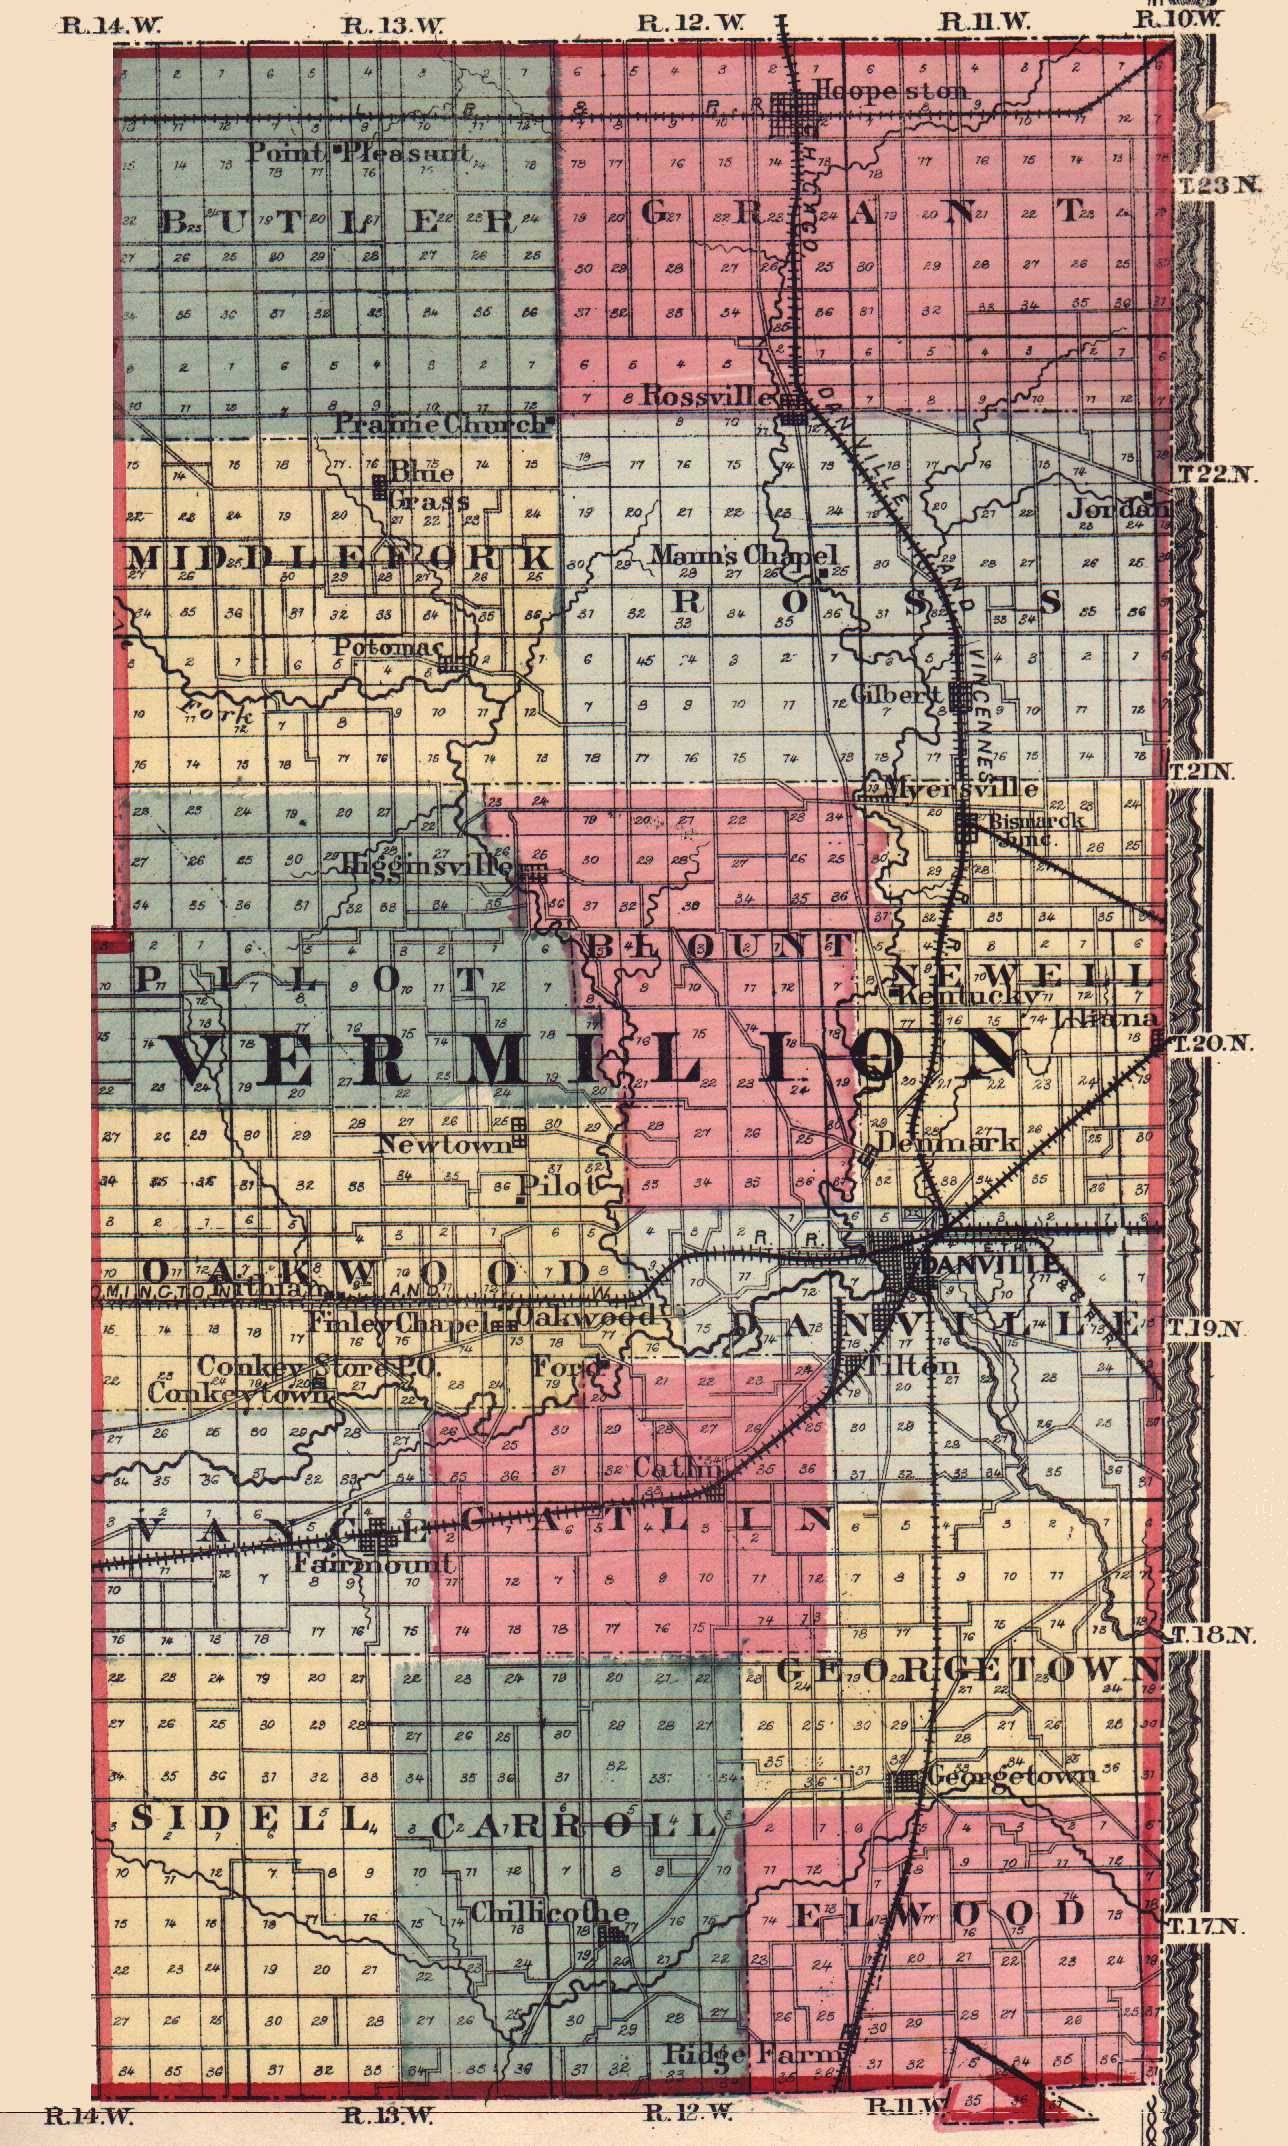 Vermilion County Illinois Maps and Gazetteers